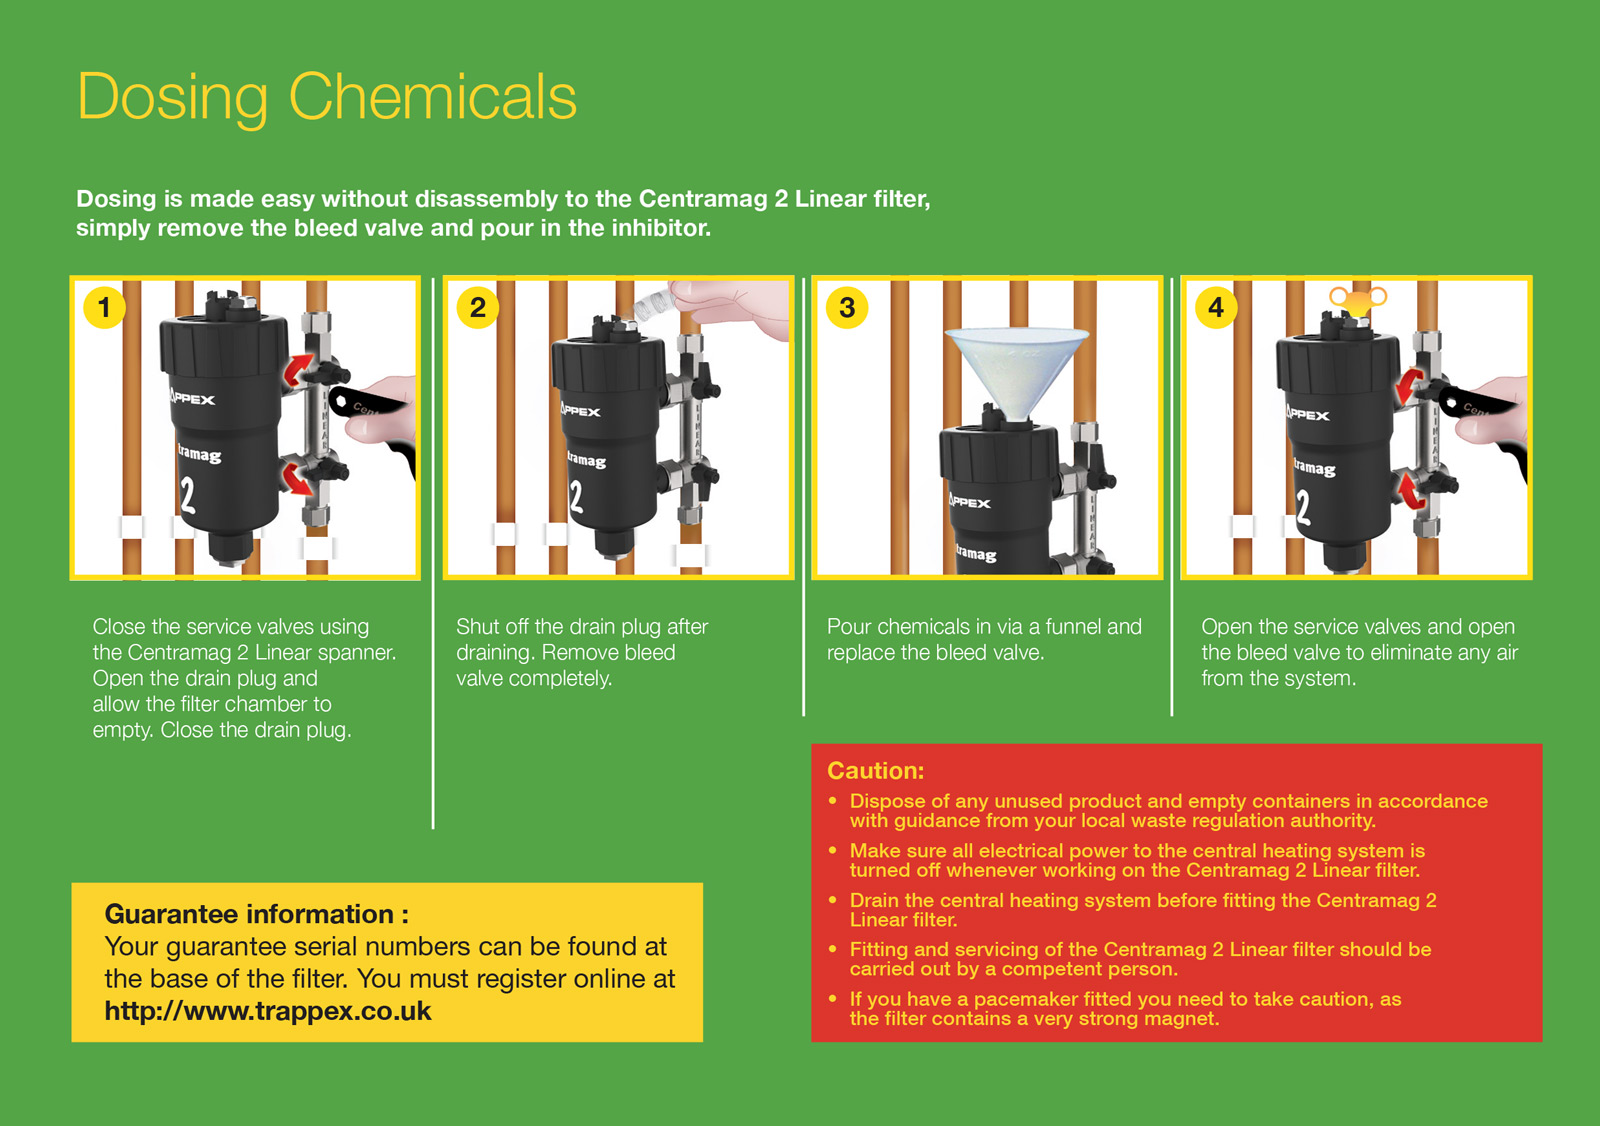 Centramag 2 Linear Dosing Chemicals